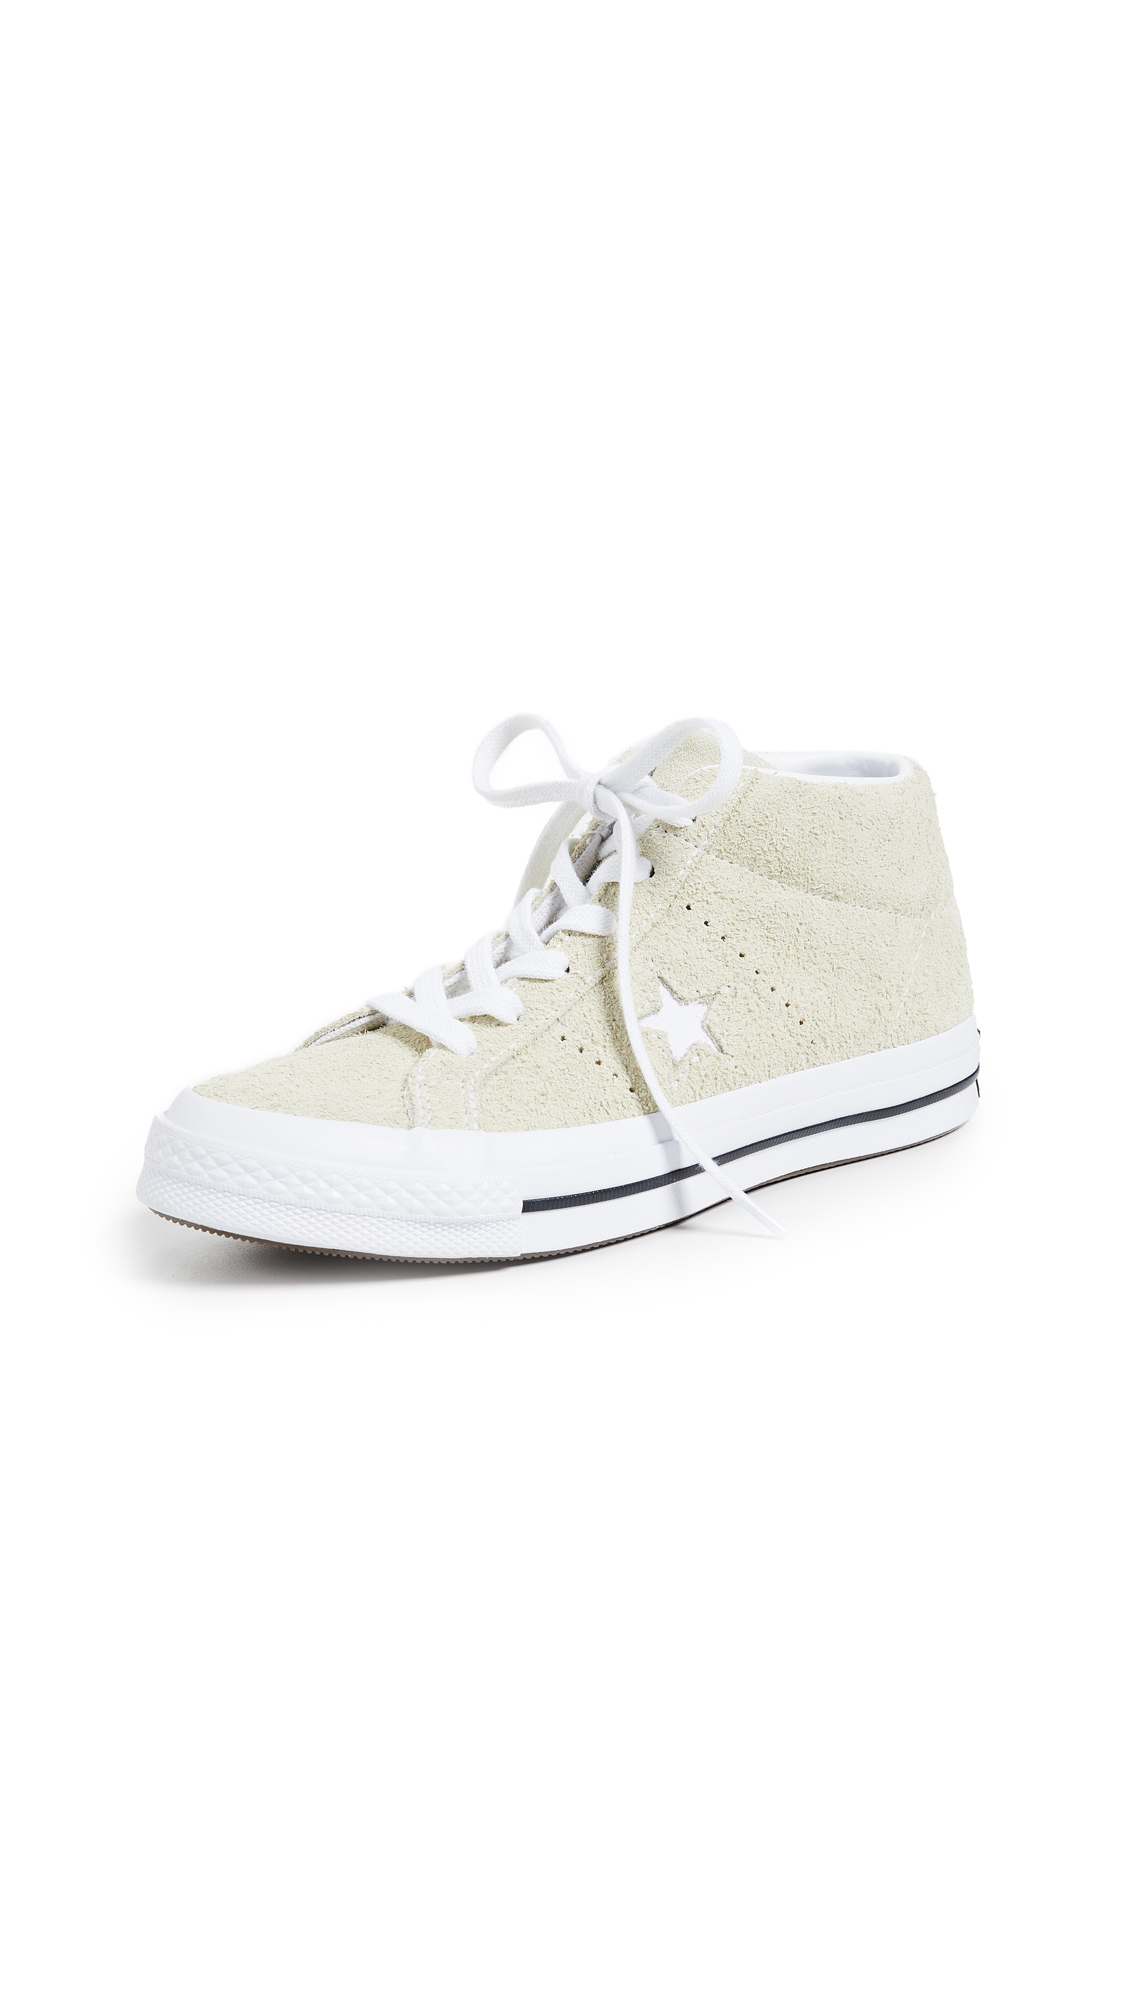 Converse One Star Mid Sneakers - Vapor Lemon/White/Black